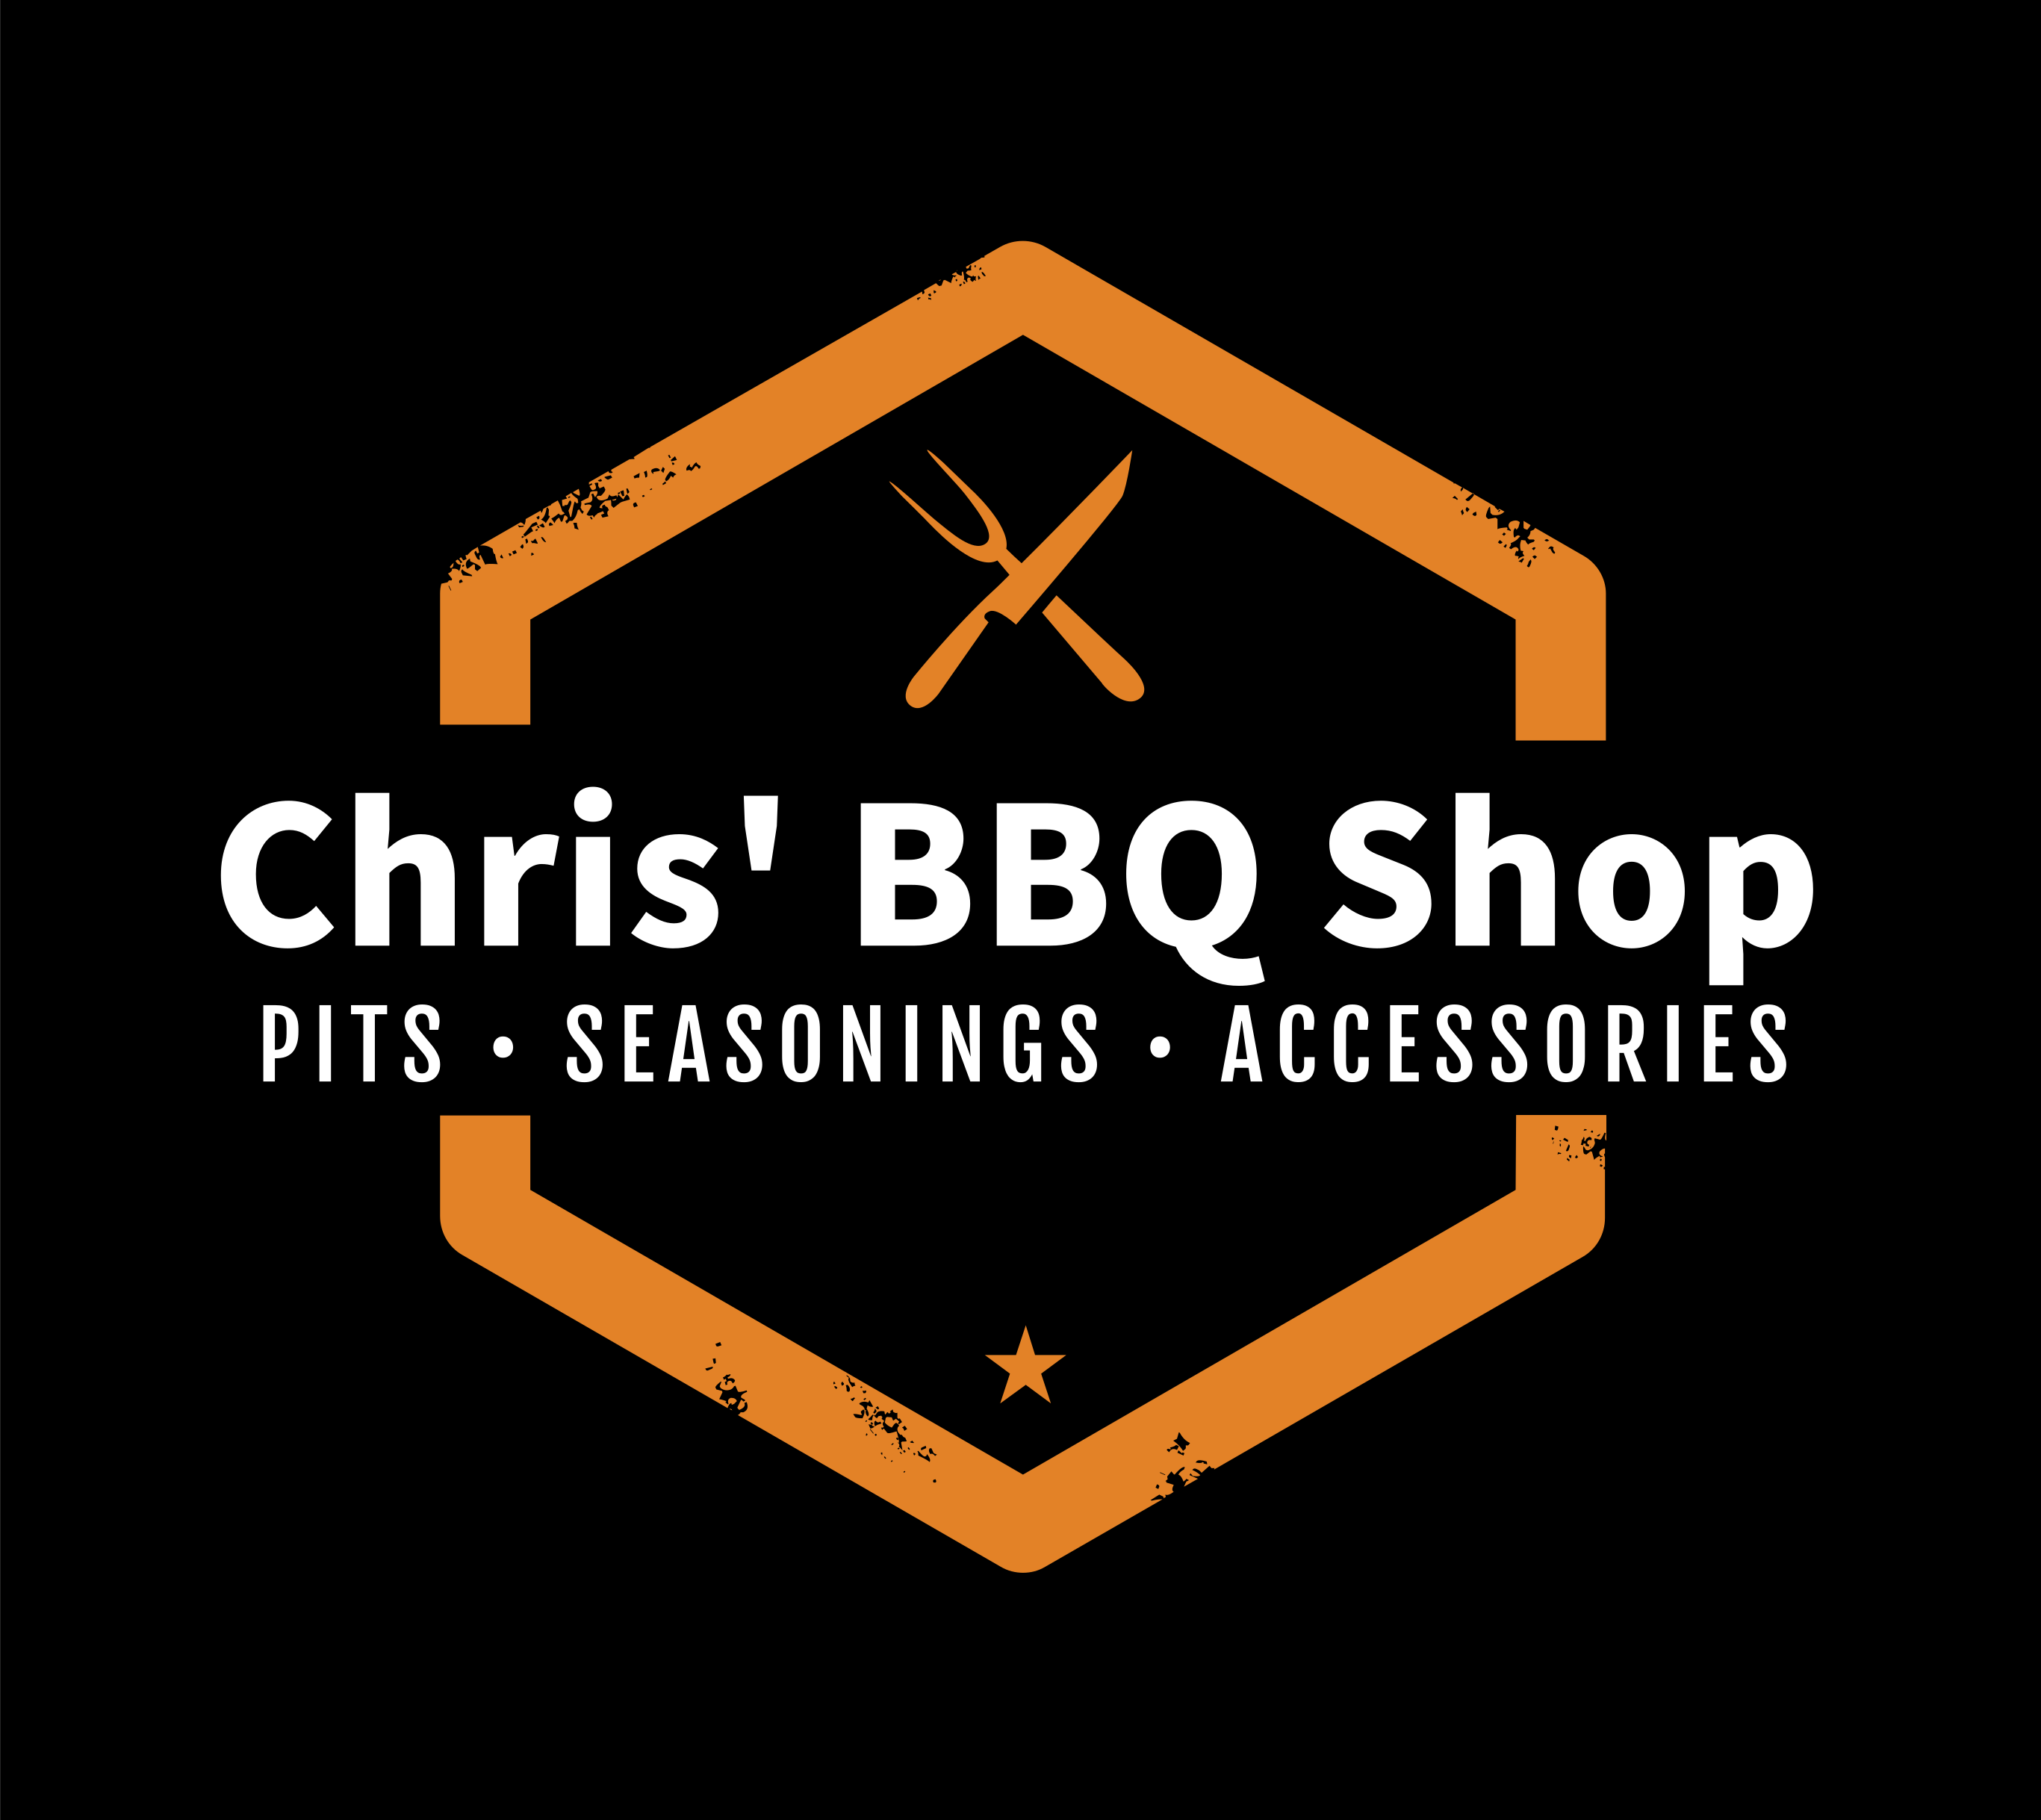 Chris' BBQ Shop Original Logo